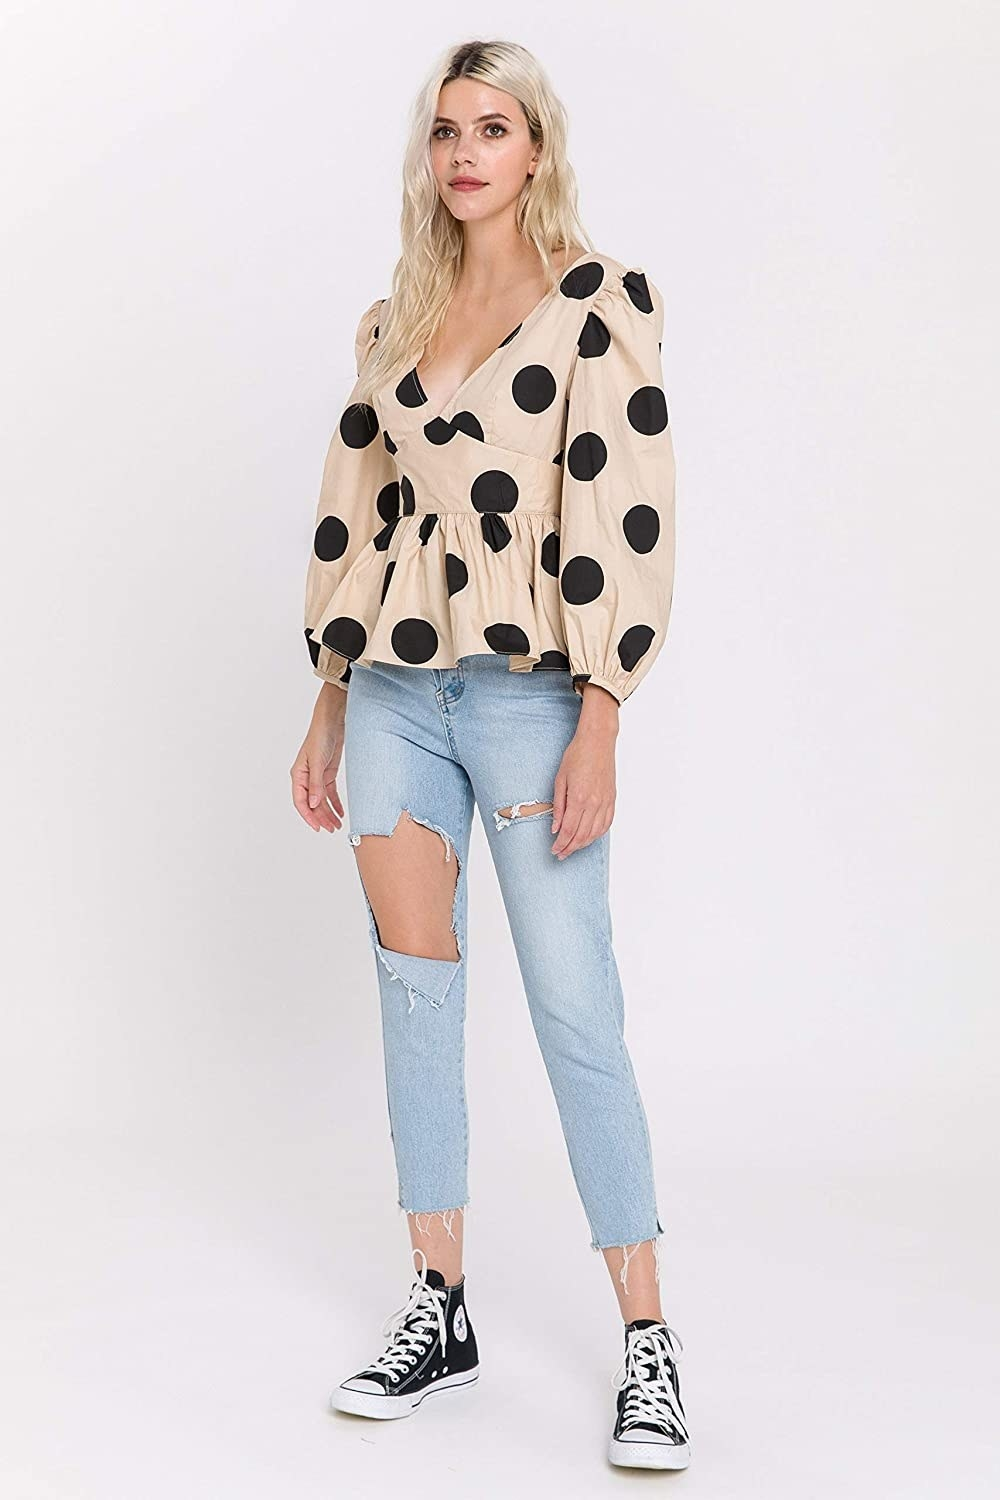 model wearing tan V-neck top with black polka dots